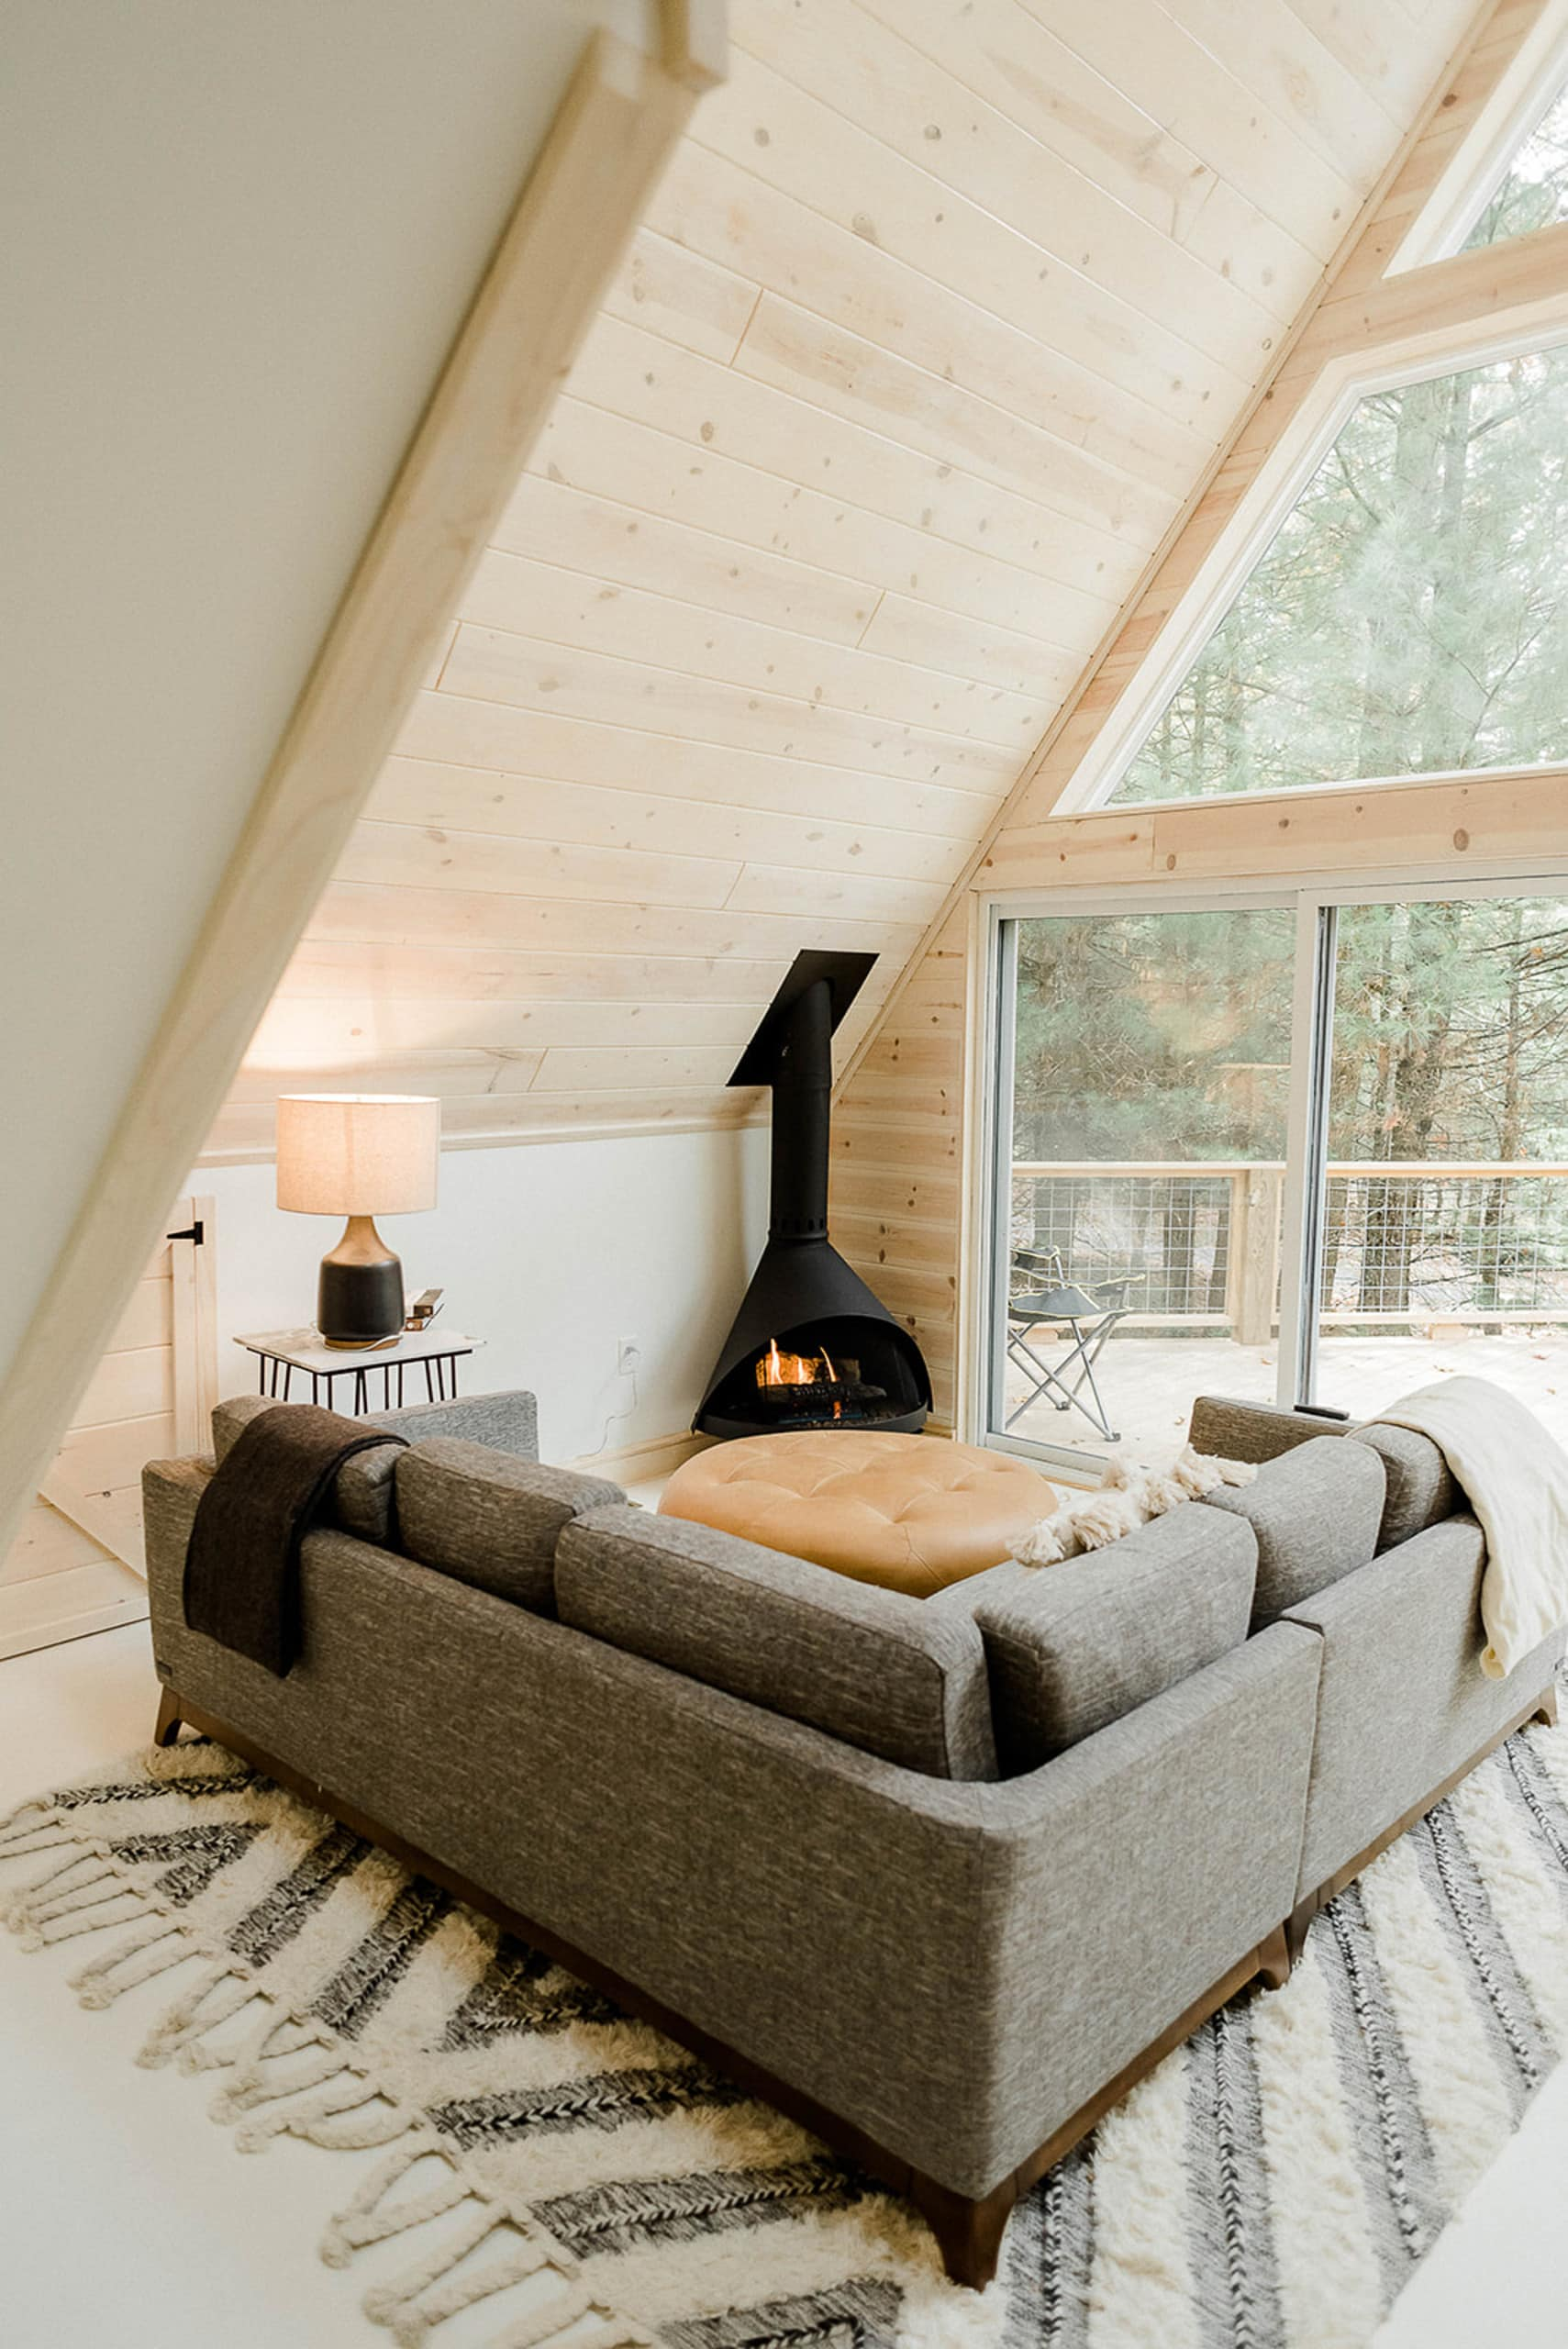 A cozy living room in a cabin